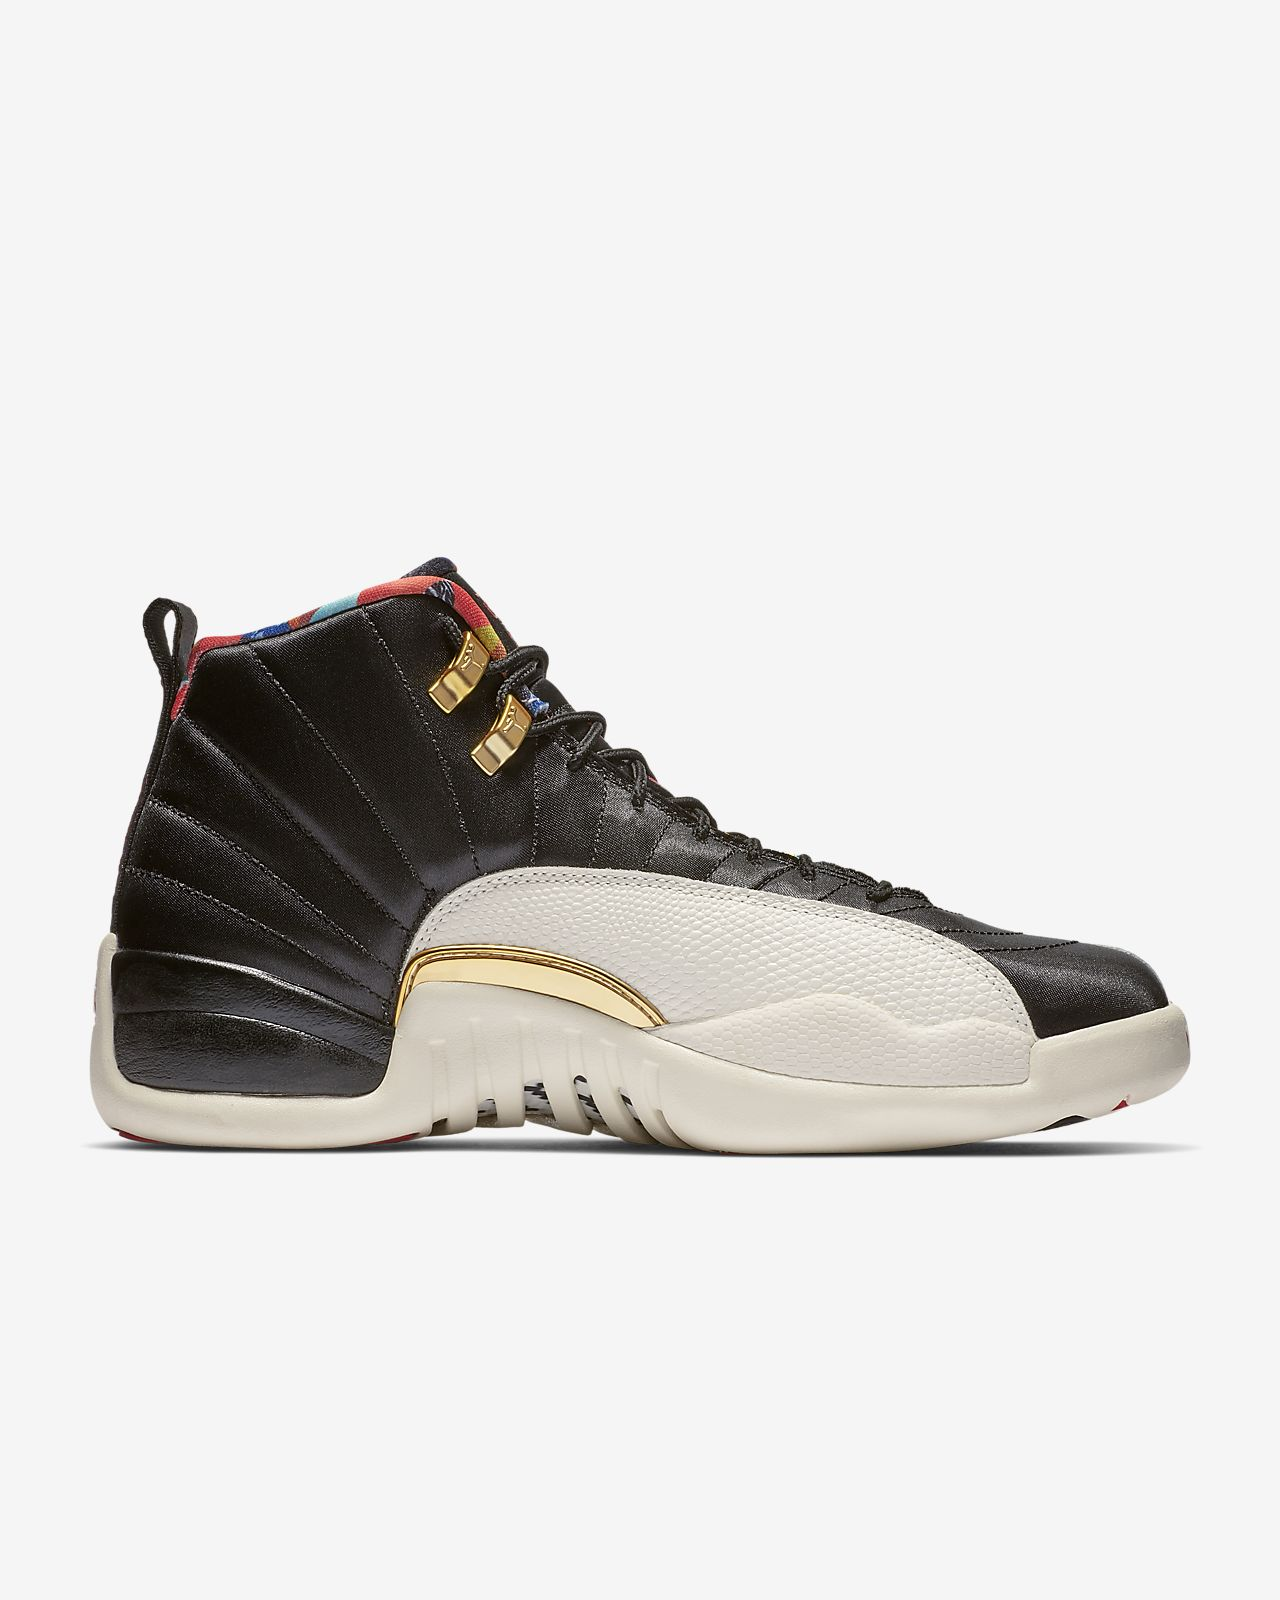 0e197a4cfff8 Air Jordan 12 Retro CNY Men s Shoe. Nike.com